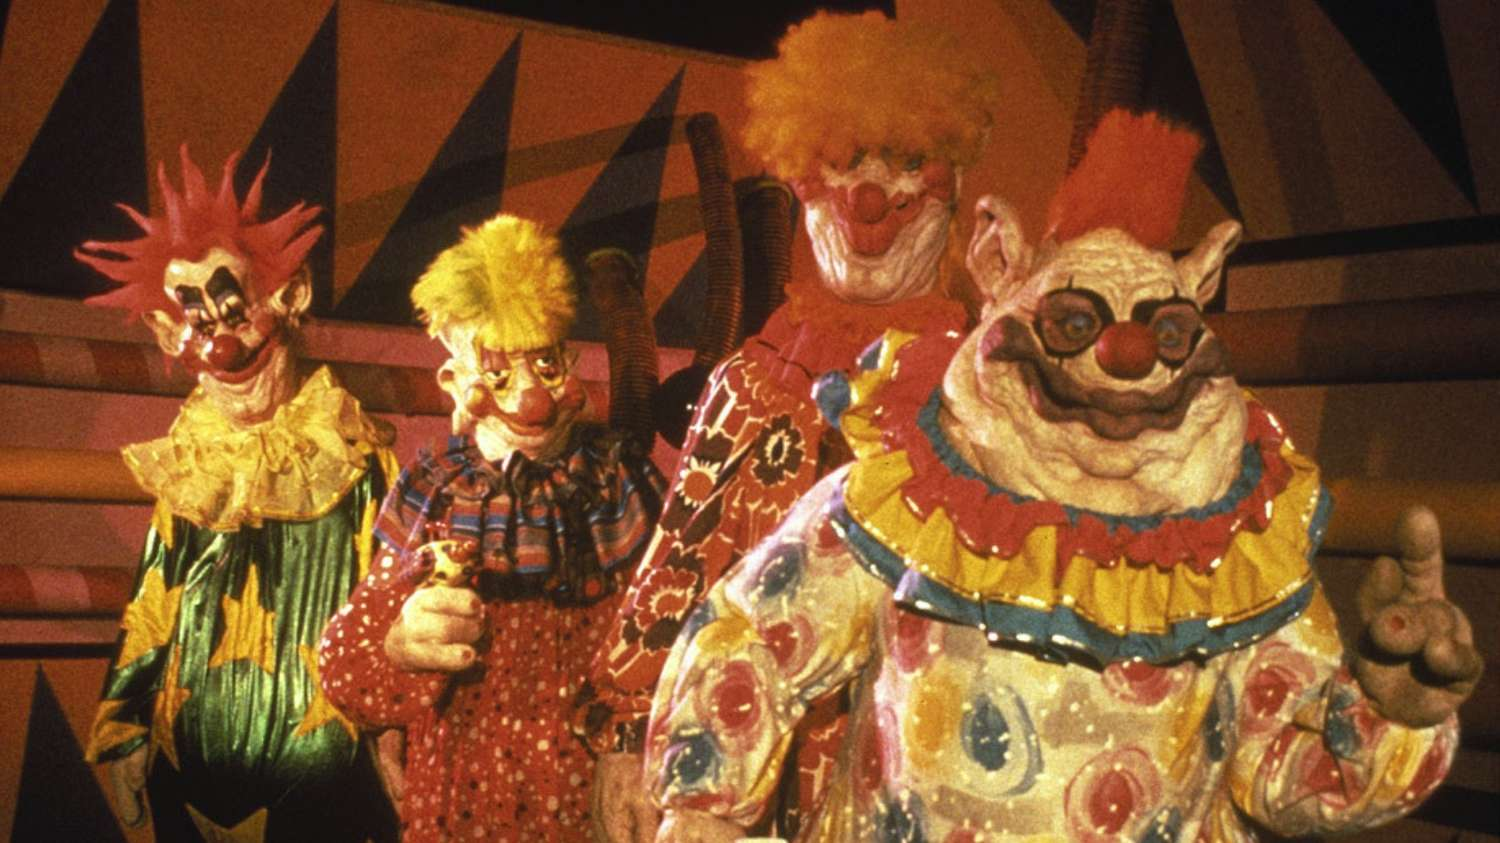 The clowns in Killer Klowns from Outer Space (1988)